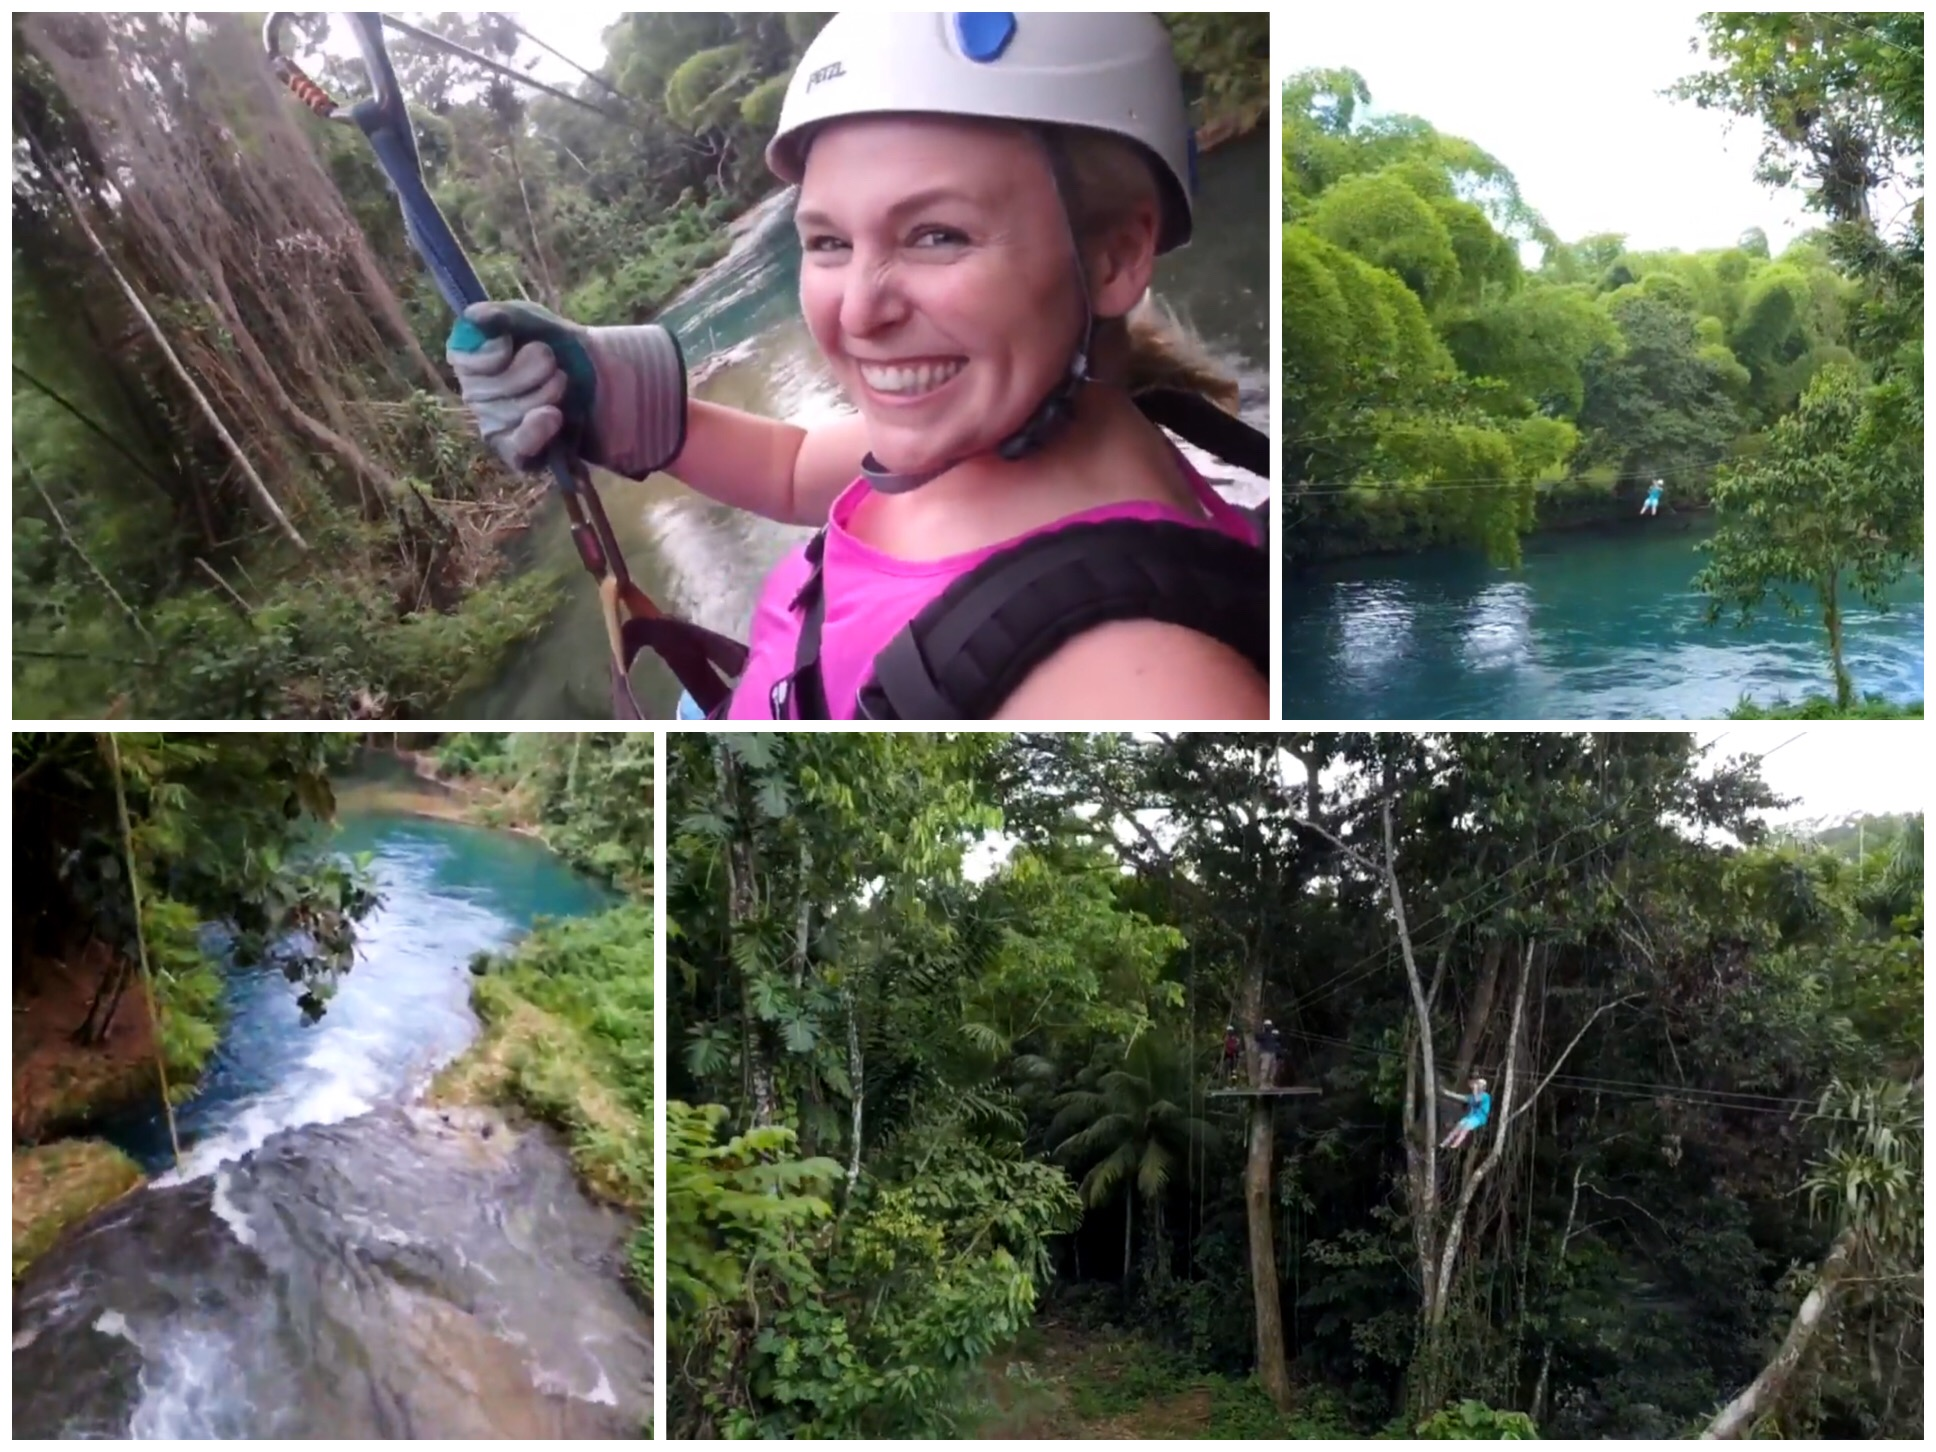 There are many awesome and unique adventures in Ocho Rios, that just beg to be experienced. Here are 8 of our favorite adventures in Ocho Rios, Jamaica you've got try!